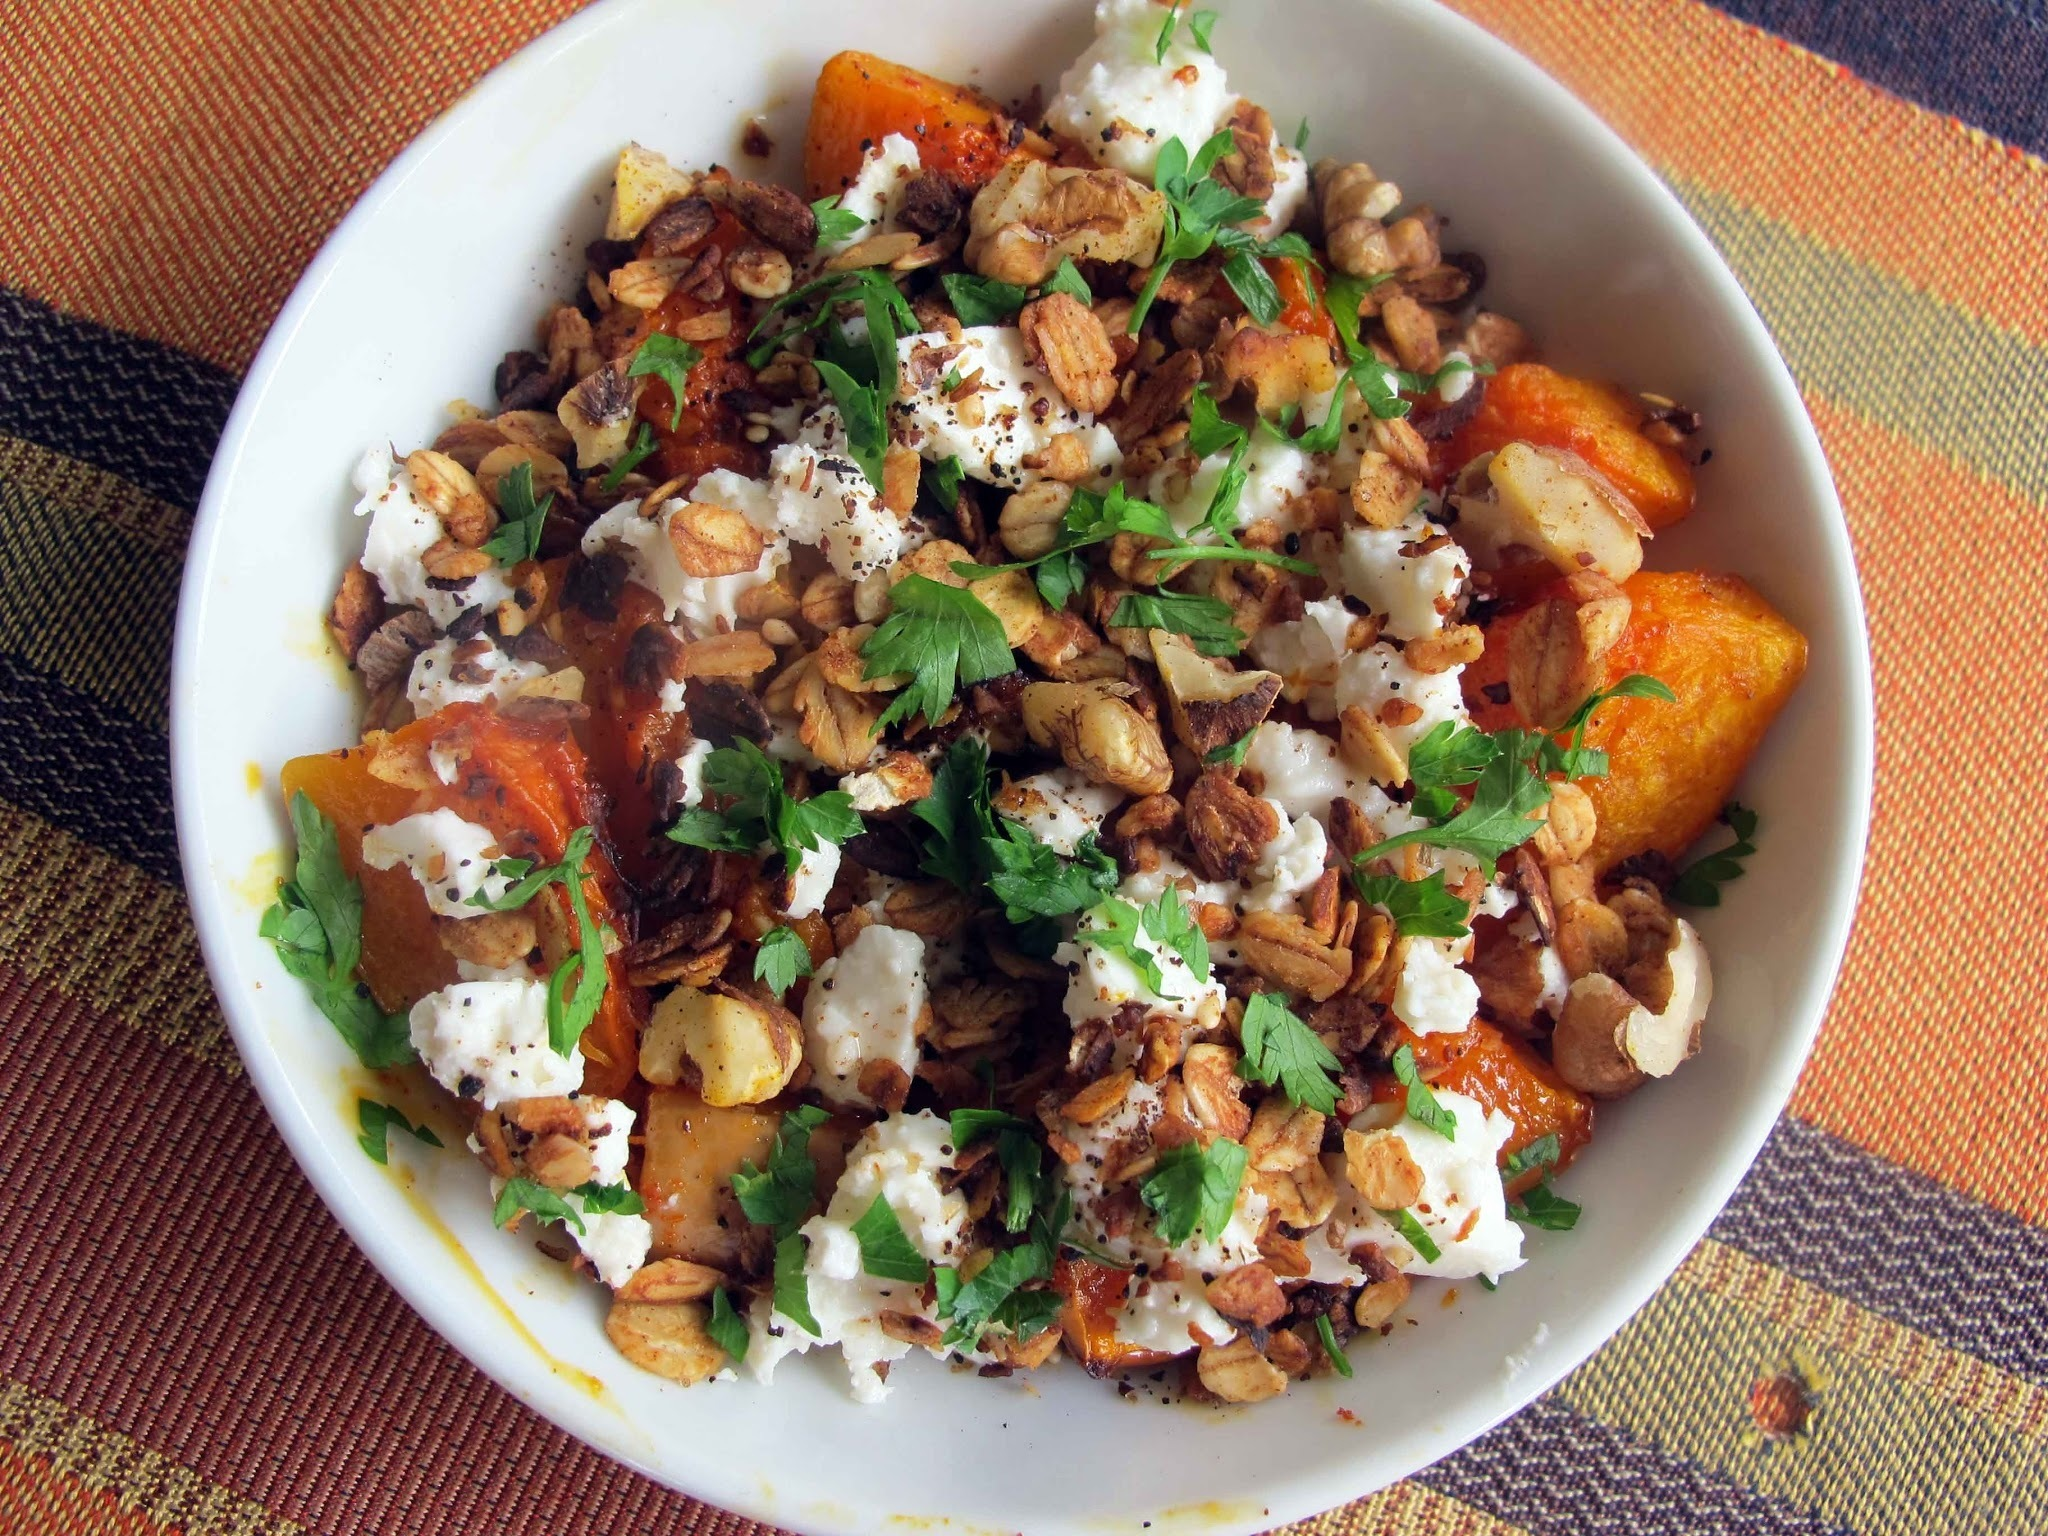 Butternut Salad with Savoury Muesli and Walnut Crumble